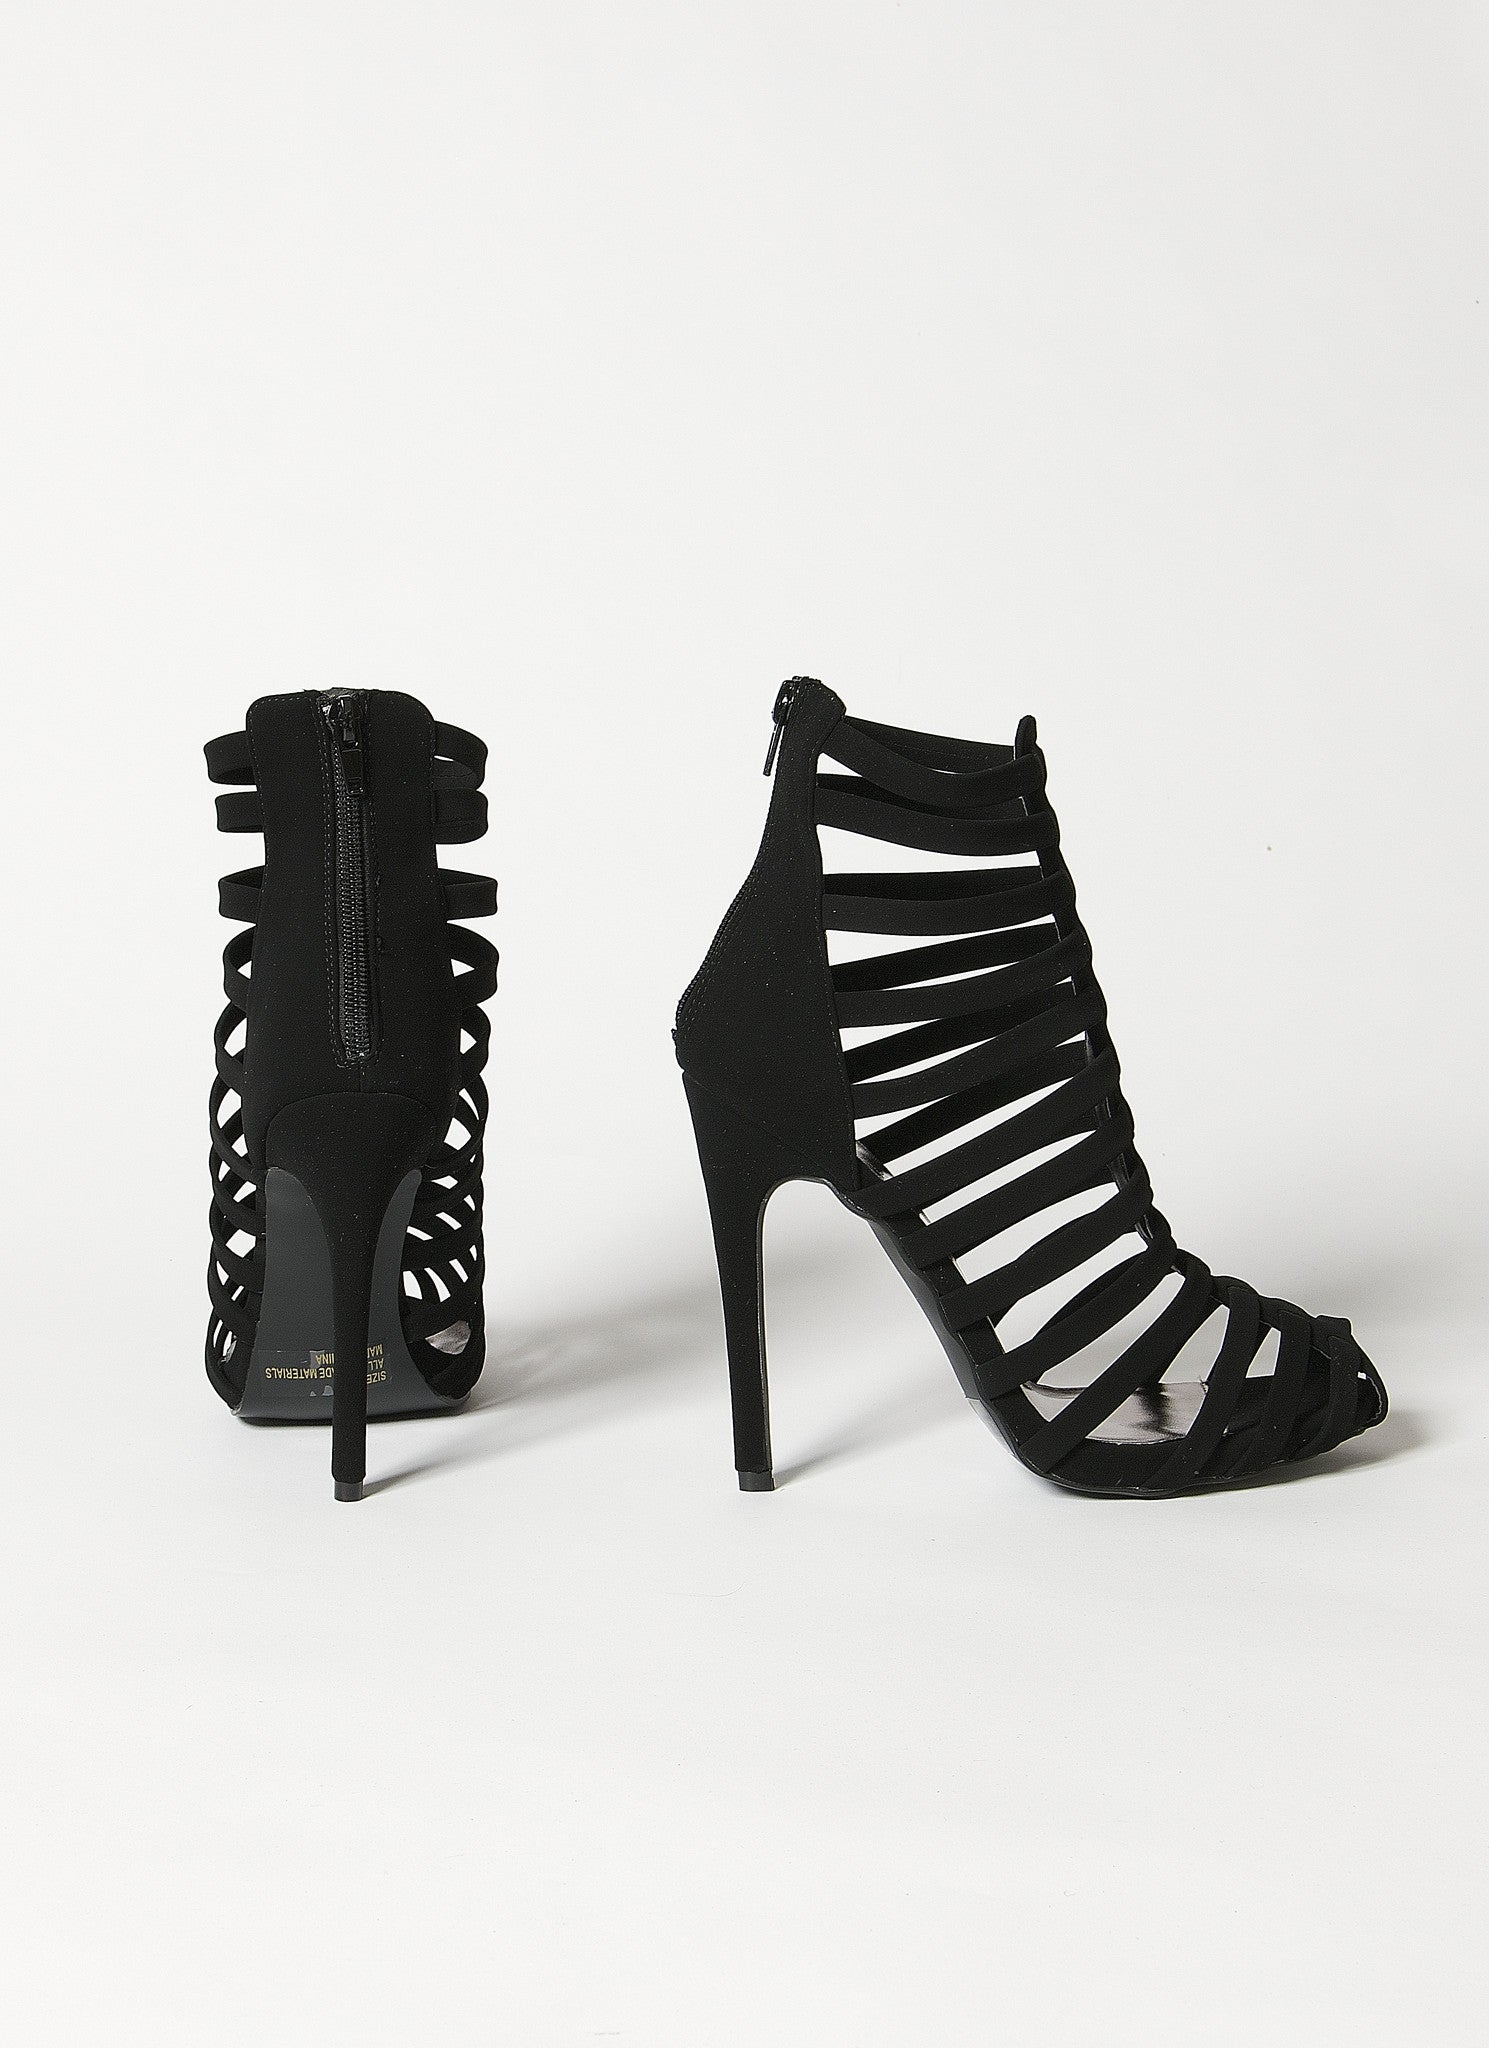 Glee Nobuckle Caged Heel , Shoes - Fashion Trend LA, Fashion Trend LA  - 2